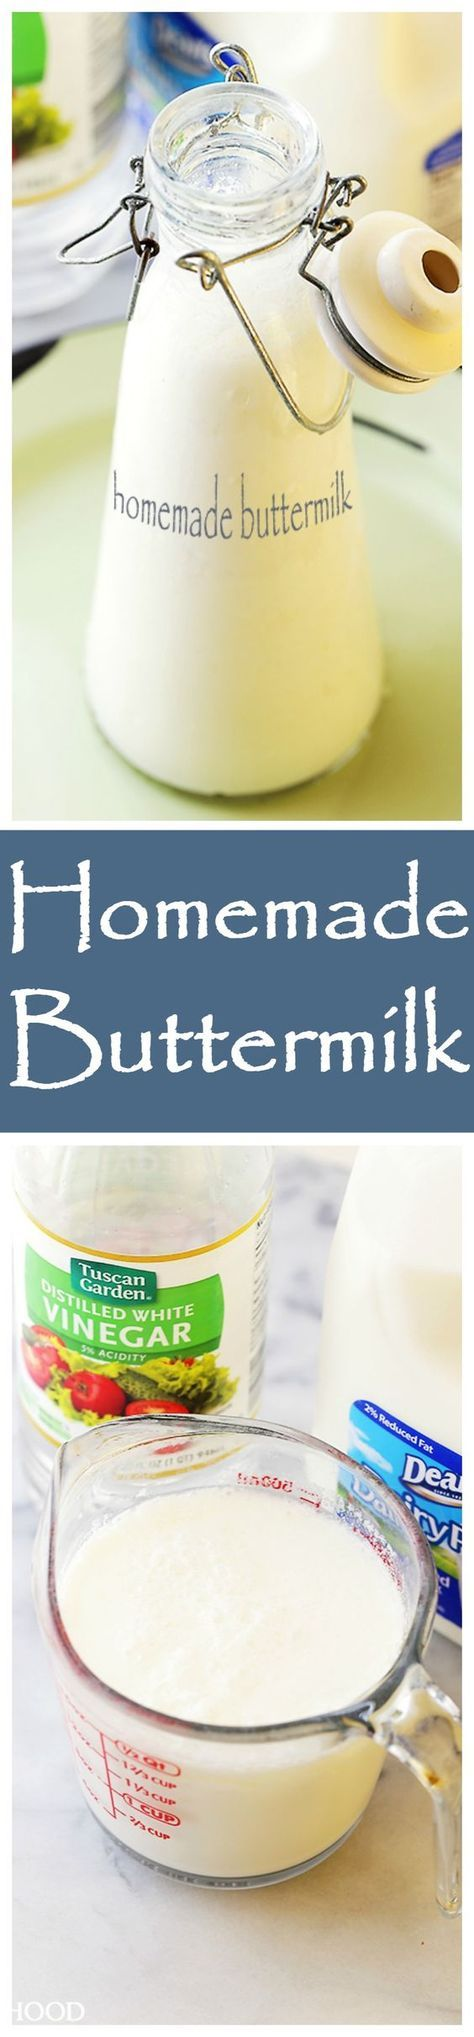 How to make Homemade Buttermilk with just 2 ingredients: Milk and White Vinegar.